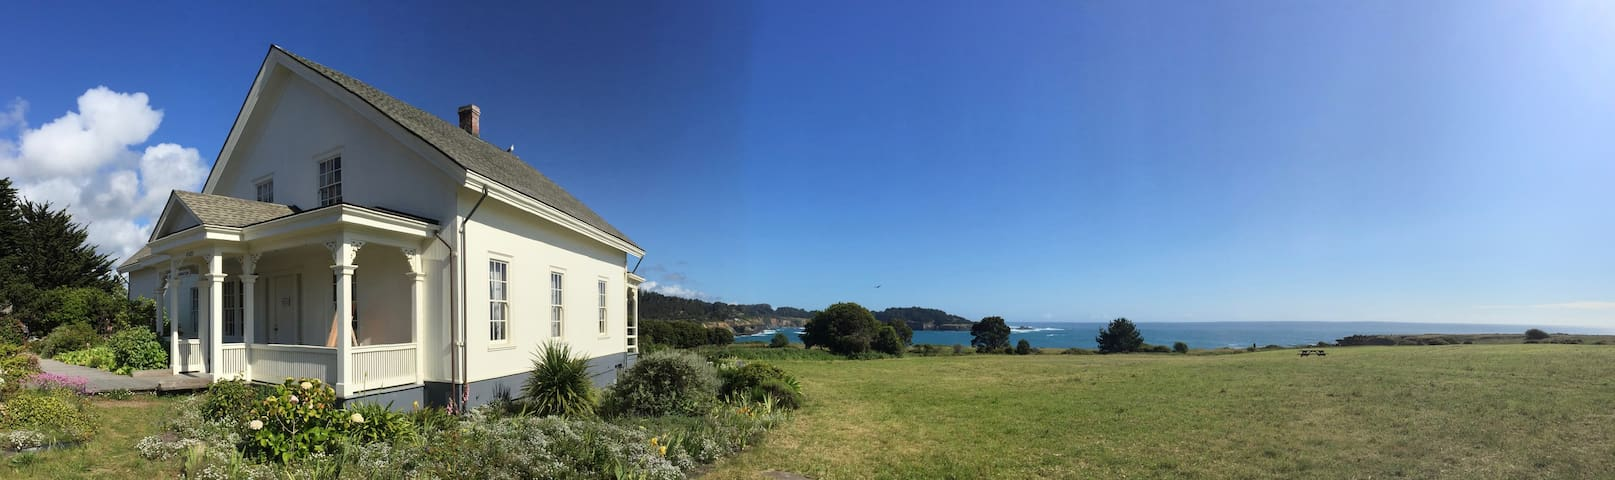 The Ford House, Mendocino. Do you know who Jerome Ford was?